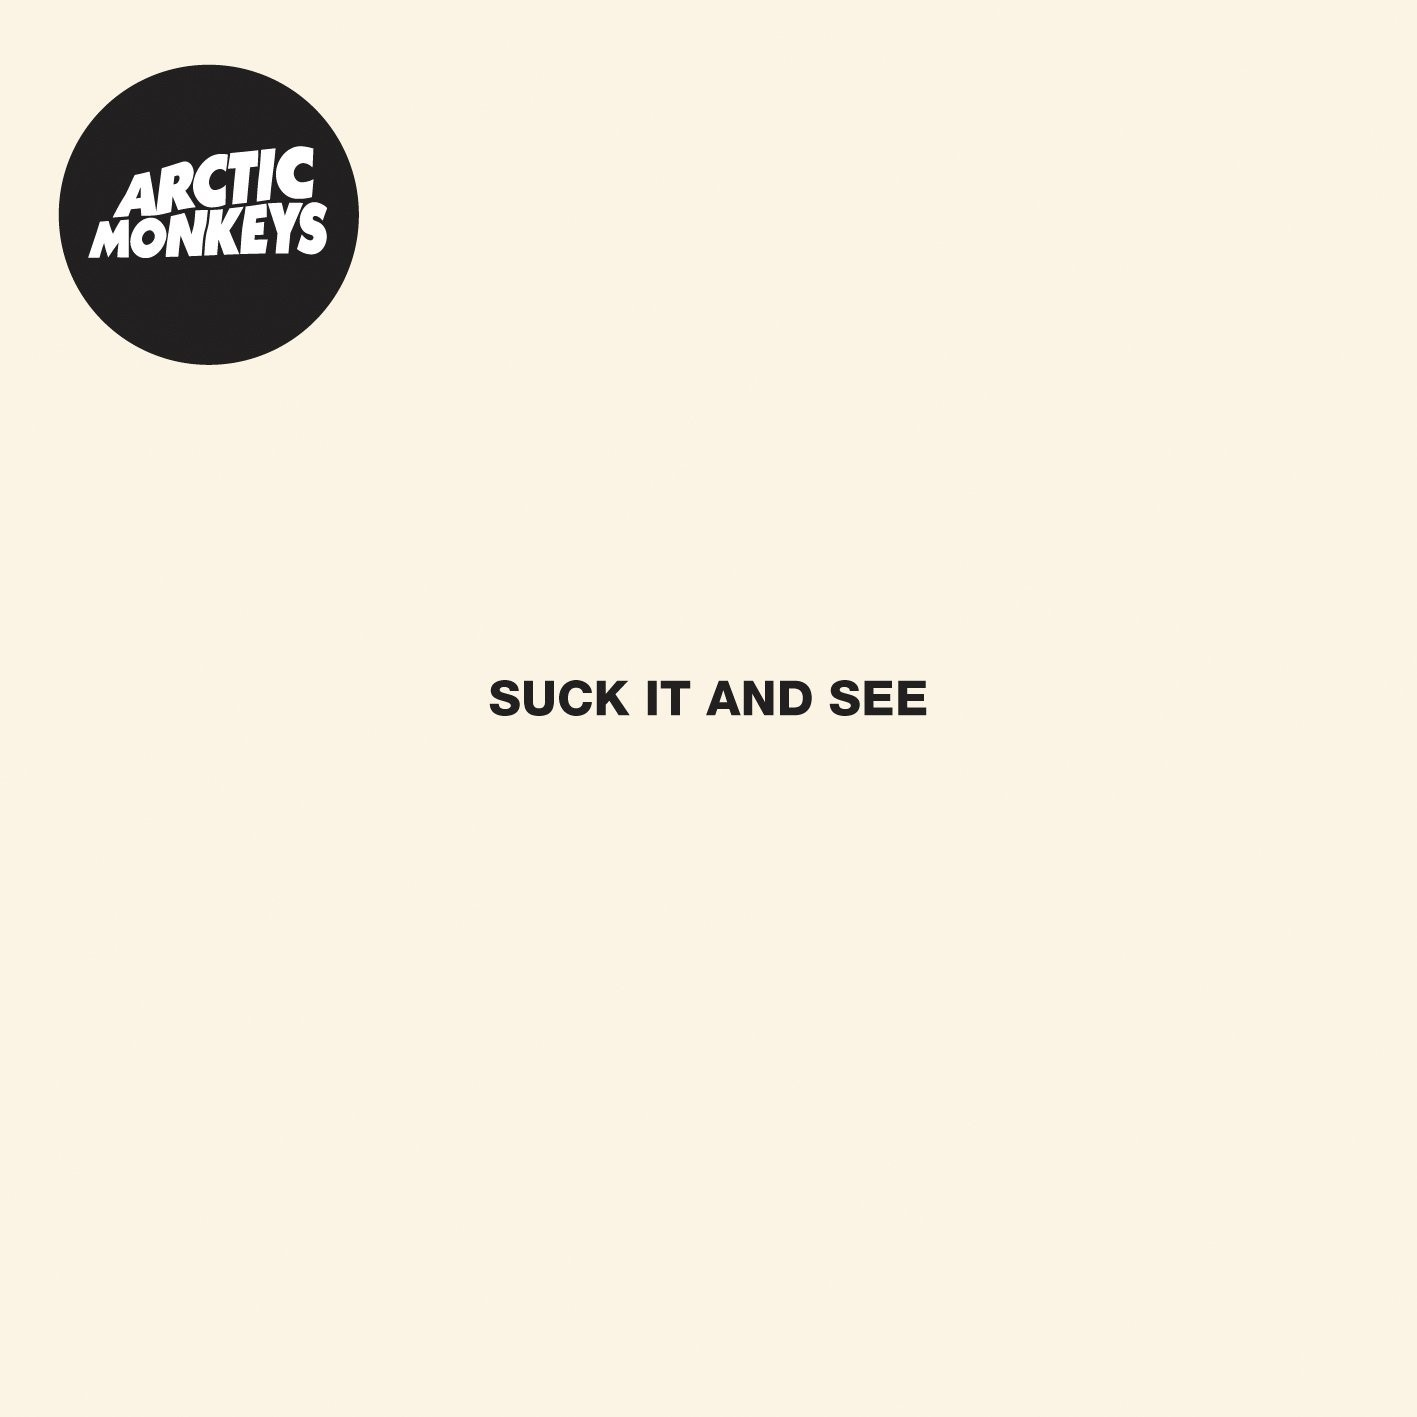 arctic monkeys suck it and see 2011 cover album